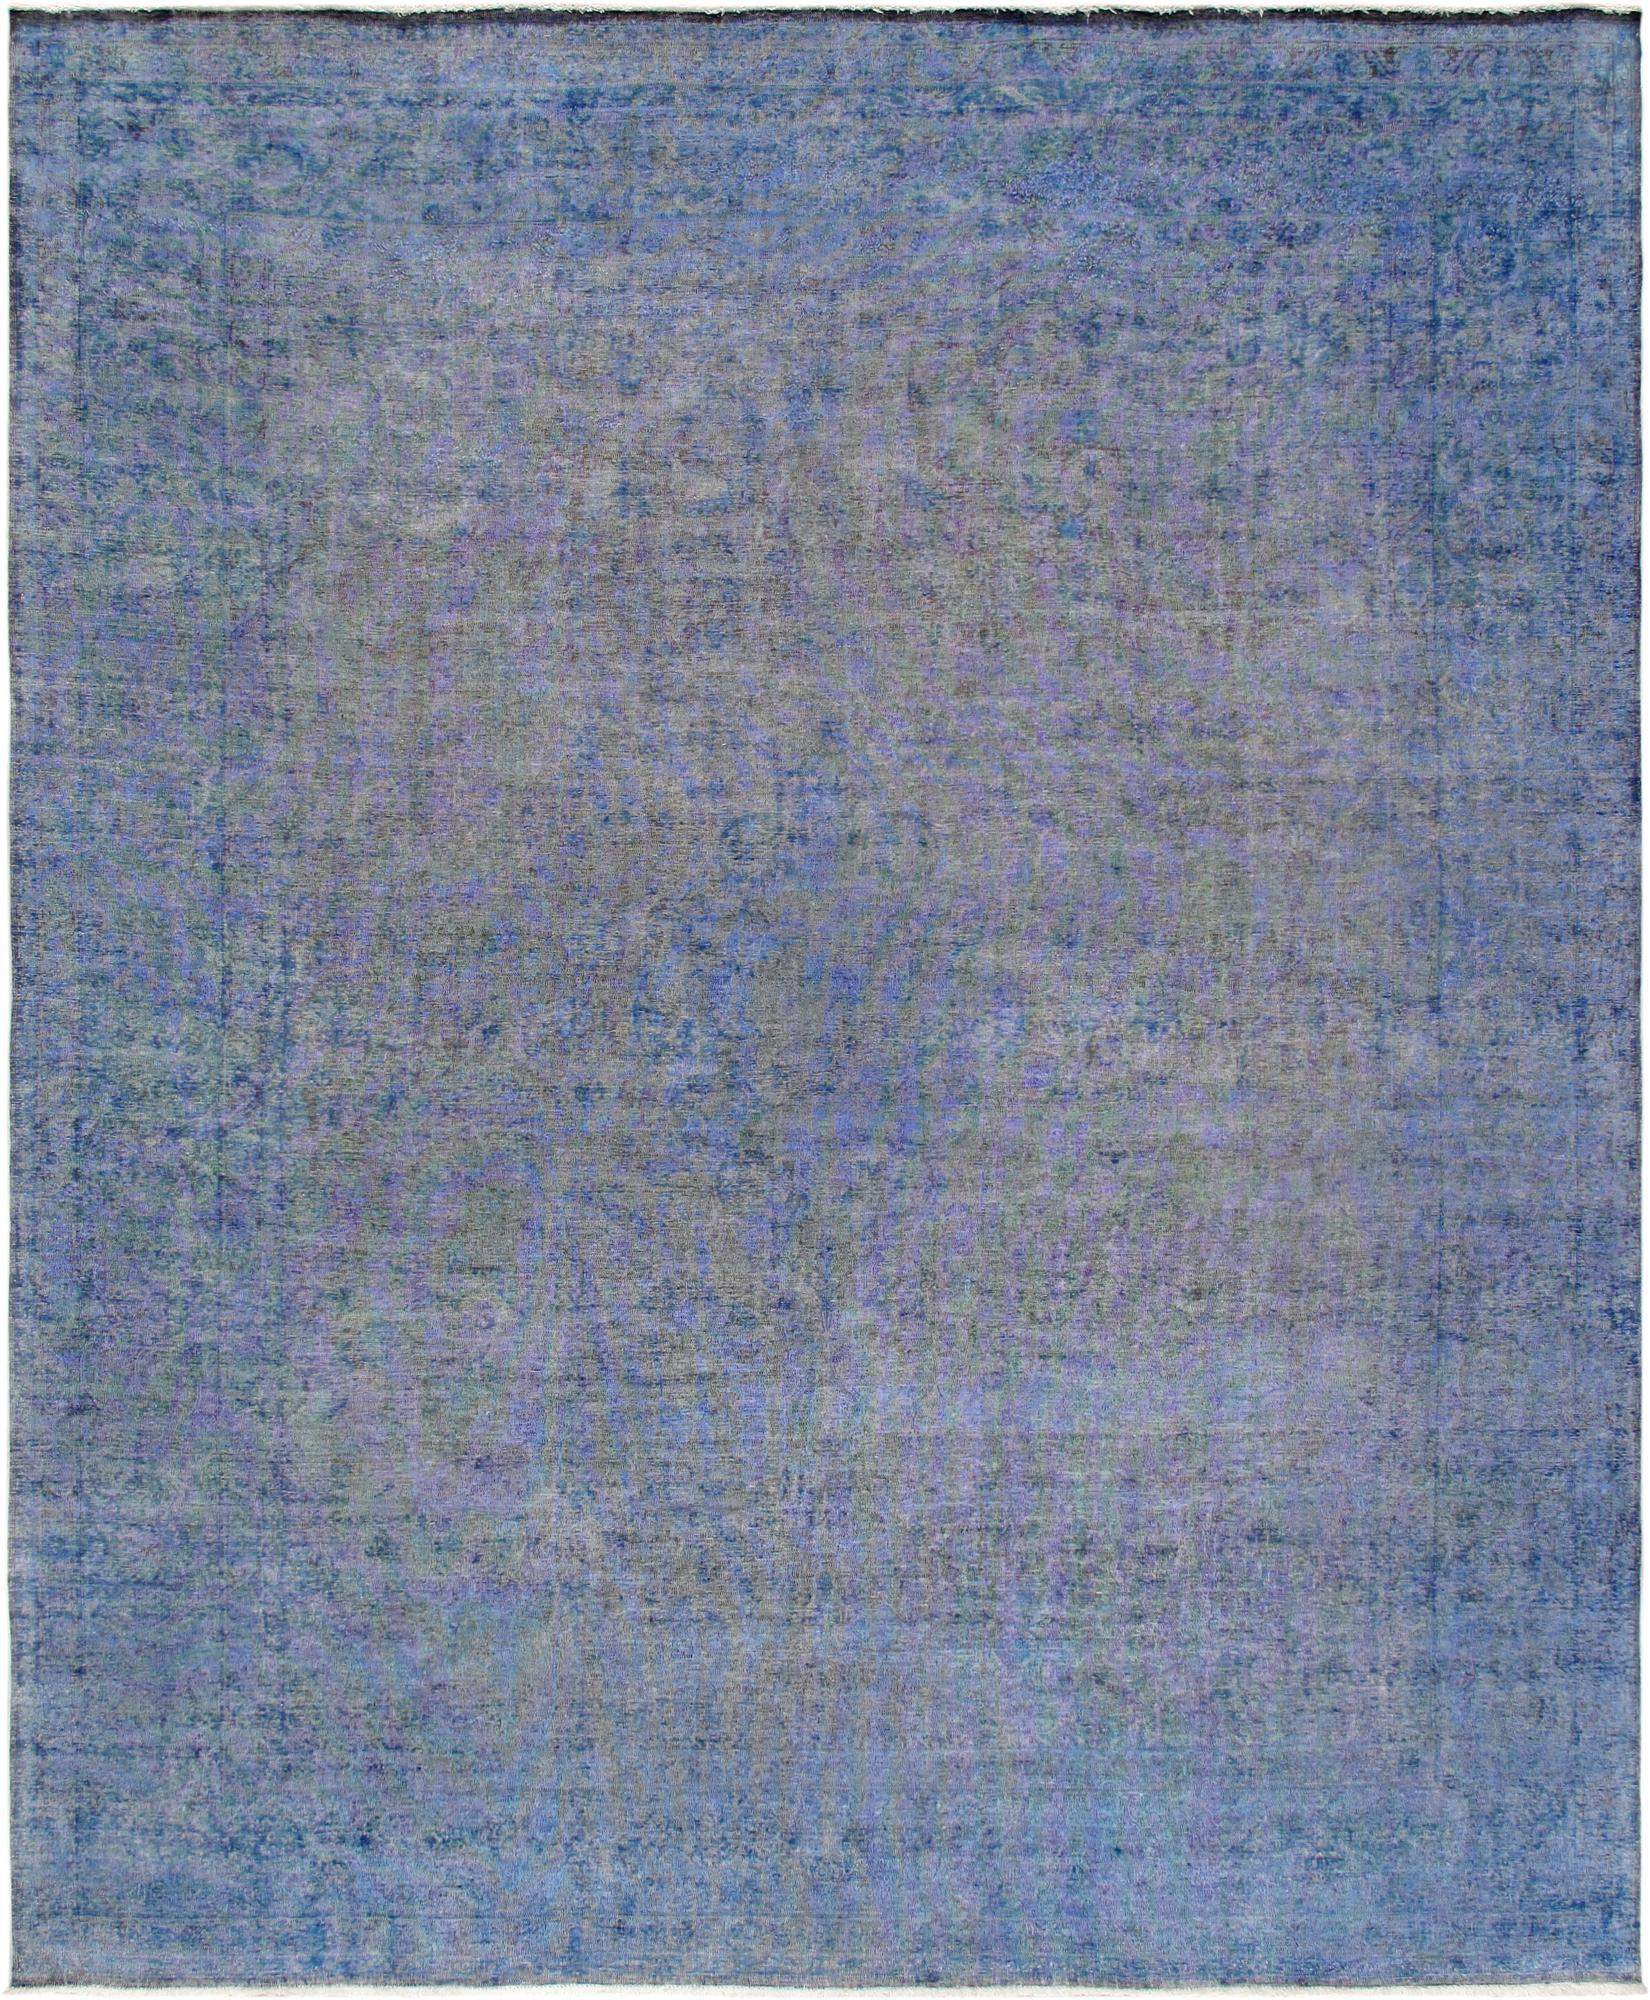 10' X 13' Overdyed Blue Hand Knotted Wool Area Rug